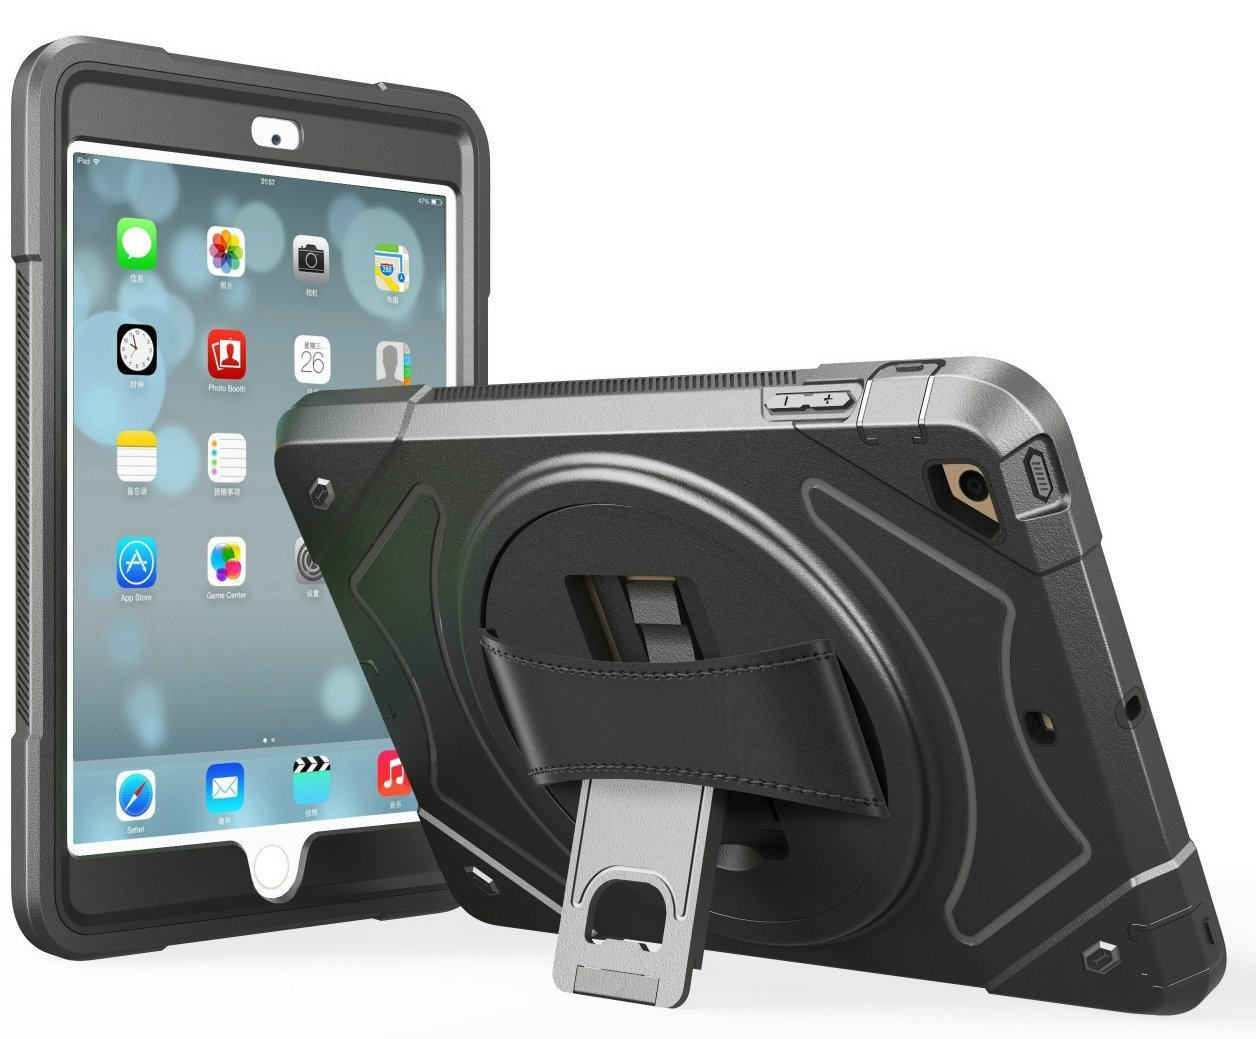 moona Apple iPad 2 3 4 and Retina Case, Hybrid Full Body 3 Layer Armor Protective ShockProof iPad Case Cover with Hand Grip and Rotating KickStand by moona